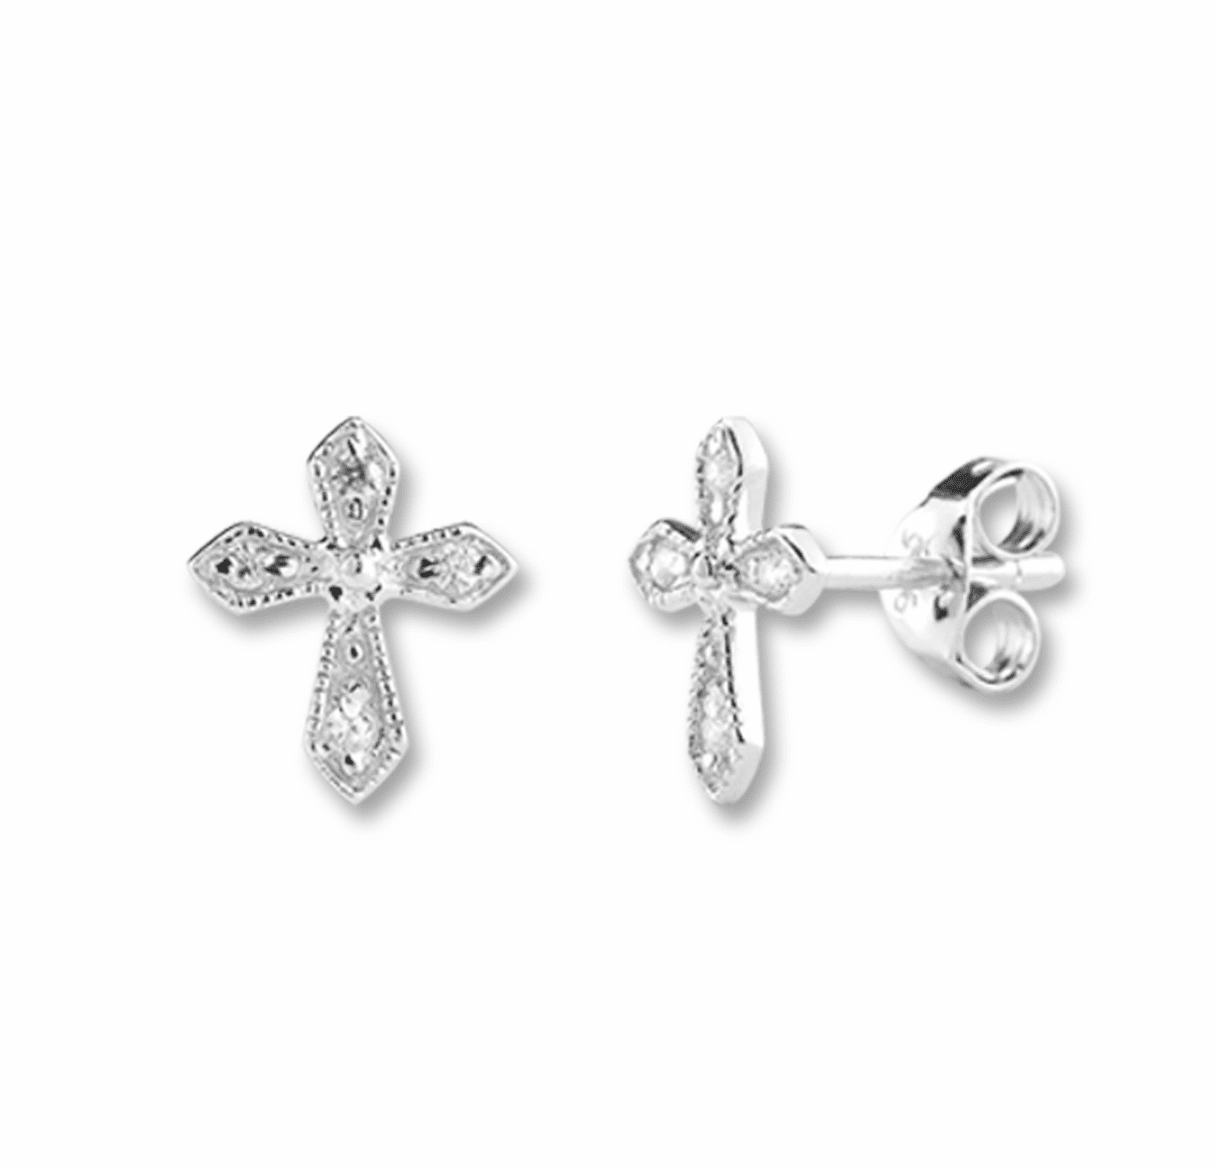 HMH Religious Six Cubic Zircons Cross Sterling Silver Earrings